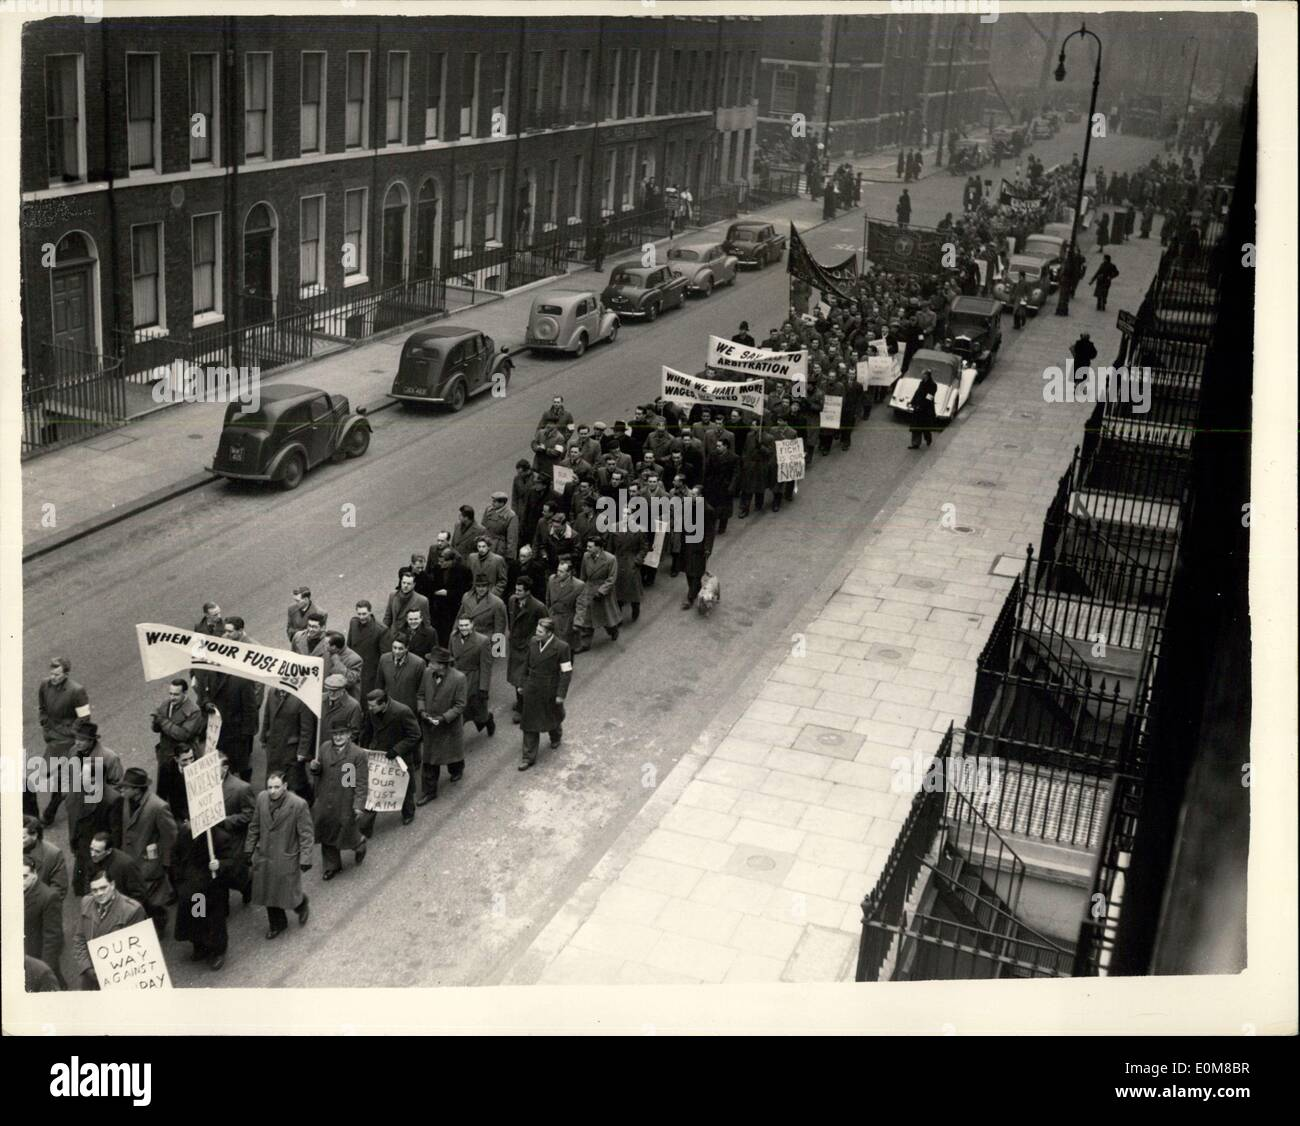 Jan. 28, 1954 - Strikers March In London: London electrical strikers marched today from Bloomsbury to the City to demonstrate in support of their demands for a wage increase. More than 7, 000 electricians have been on strike in London since Monday and will remain out until Sunday. Photo Shows General view showing as the strikers marched through Doughty-street, with their banners today. - Stock Image